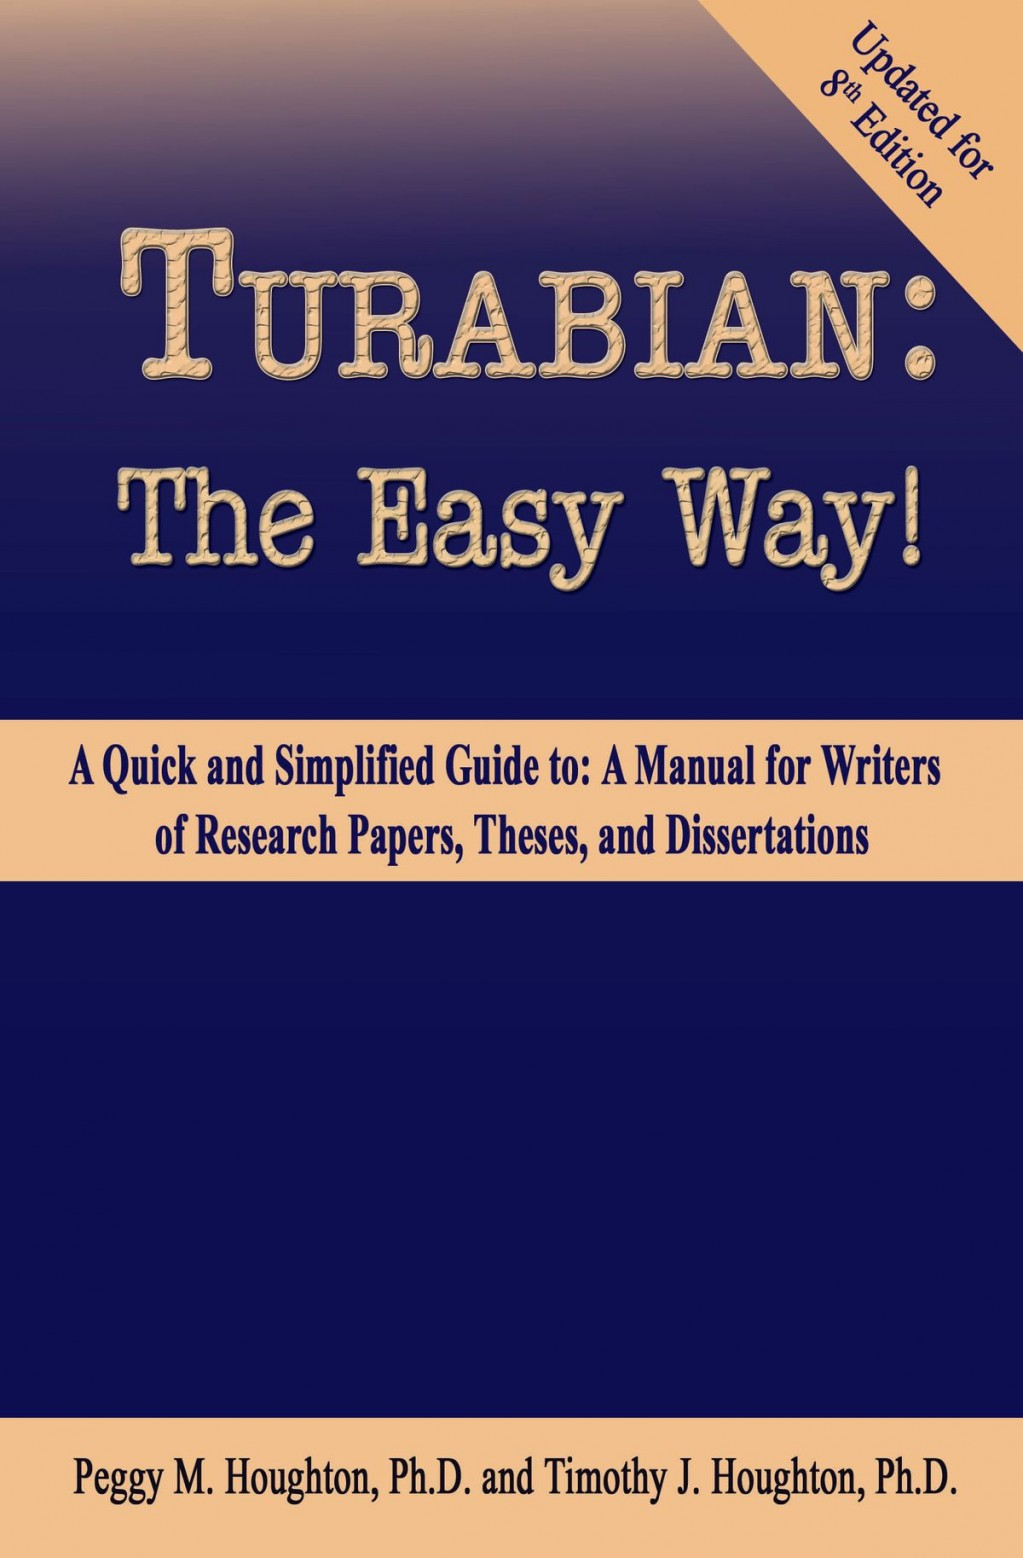 017 Turabian The Easy Way For 8th Edition Manual Writers Of Researchs Theses And Dissertations Eighth Phenomenal A Research Papers Pdf Large